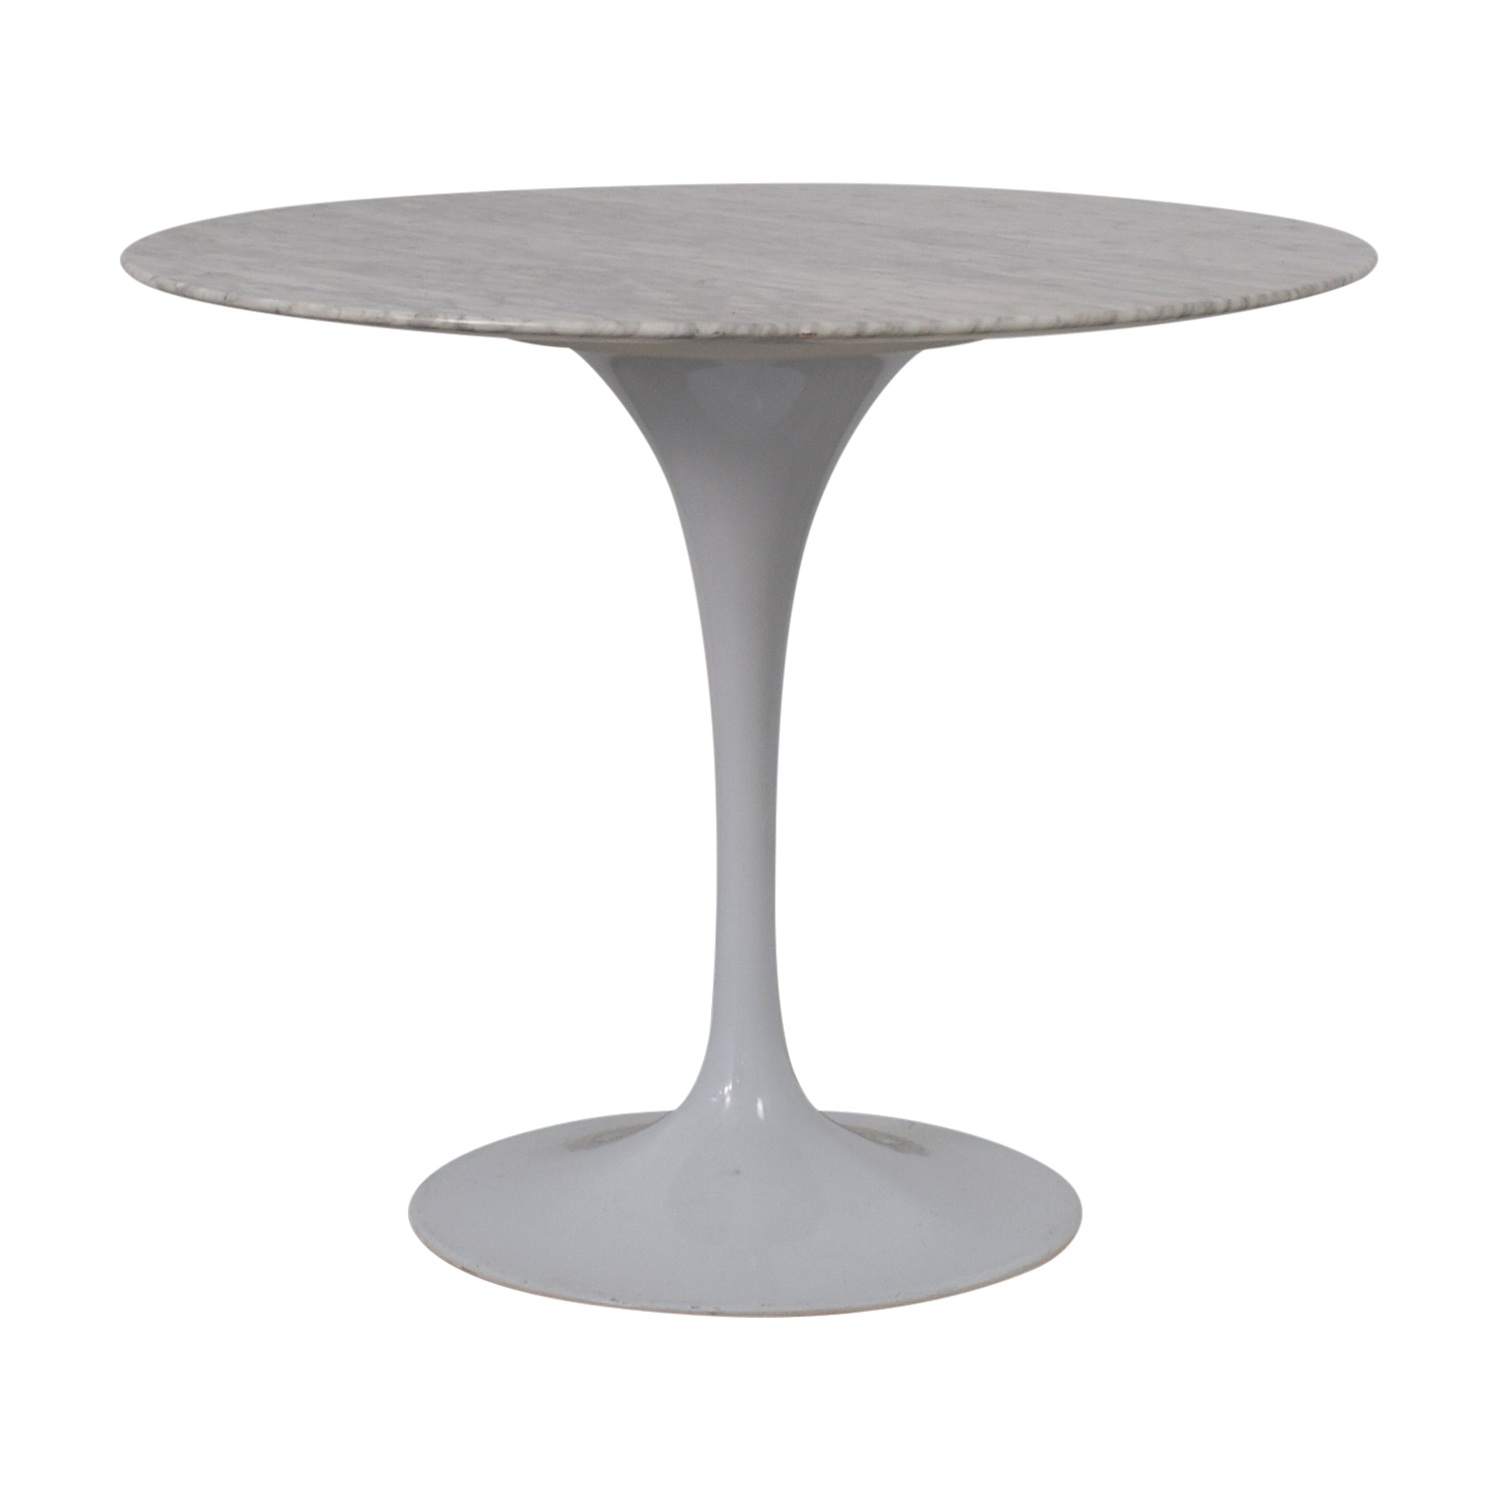 Knoll Knoll Saarinen with Carrara Marble Dining Table